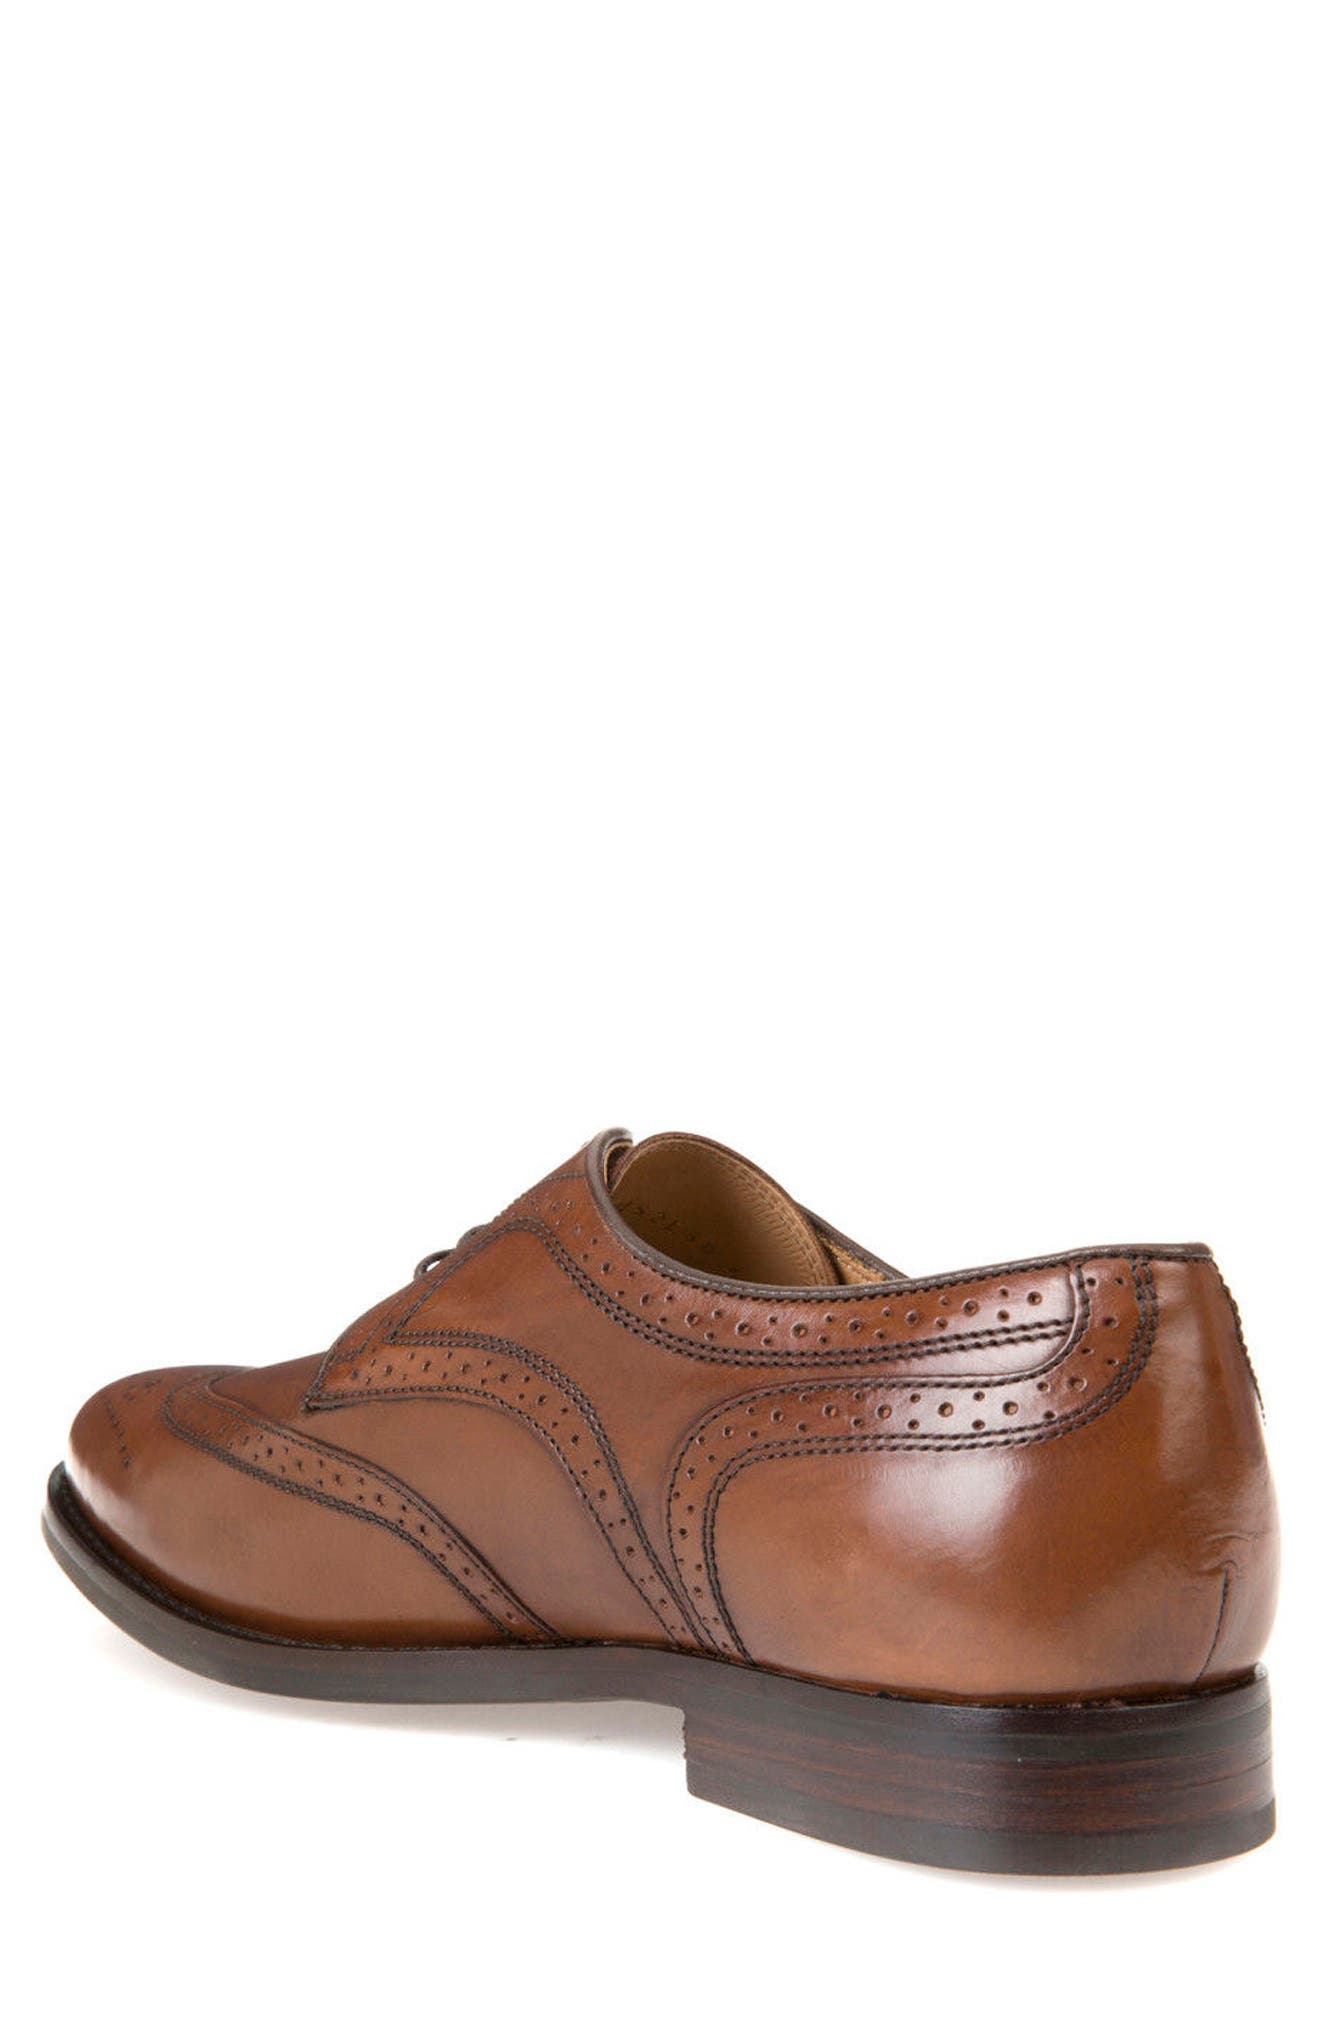 Hampstead 5 Wingtip,                             Alternate thumbnail 2, color,                             Dark Cognac Leather